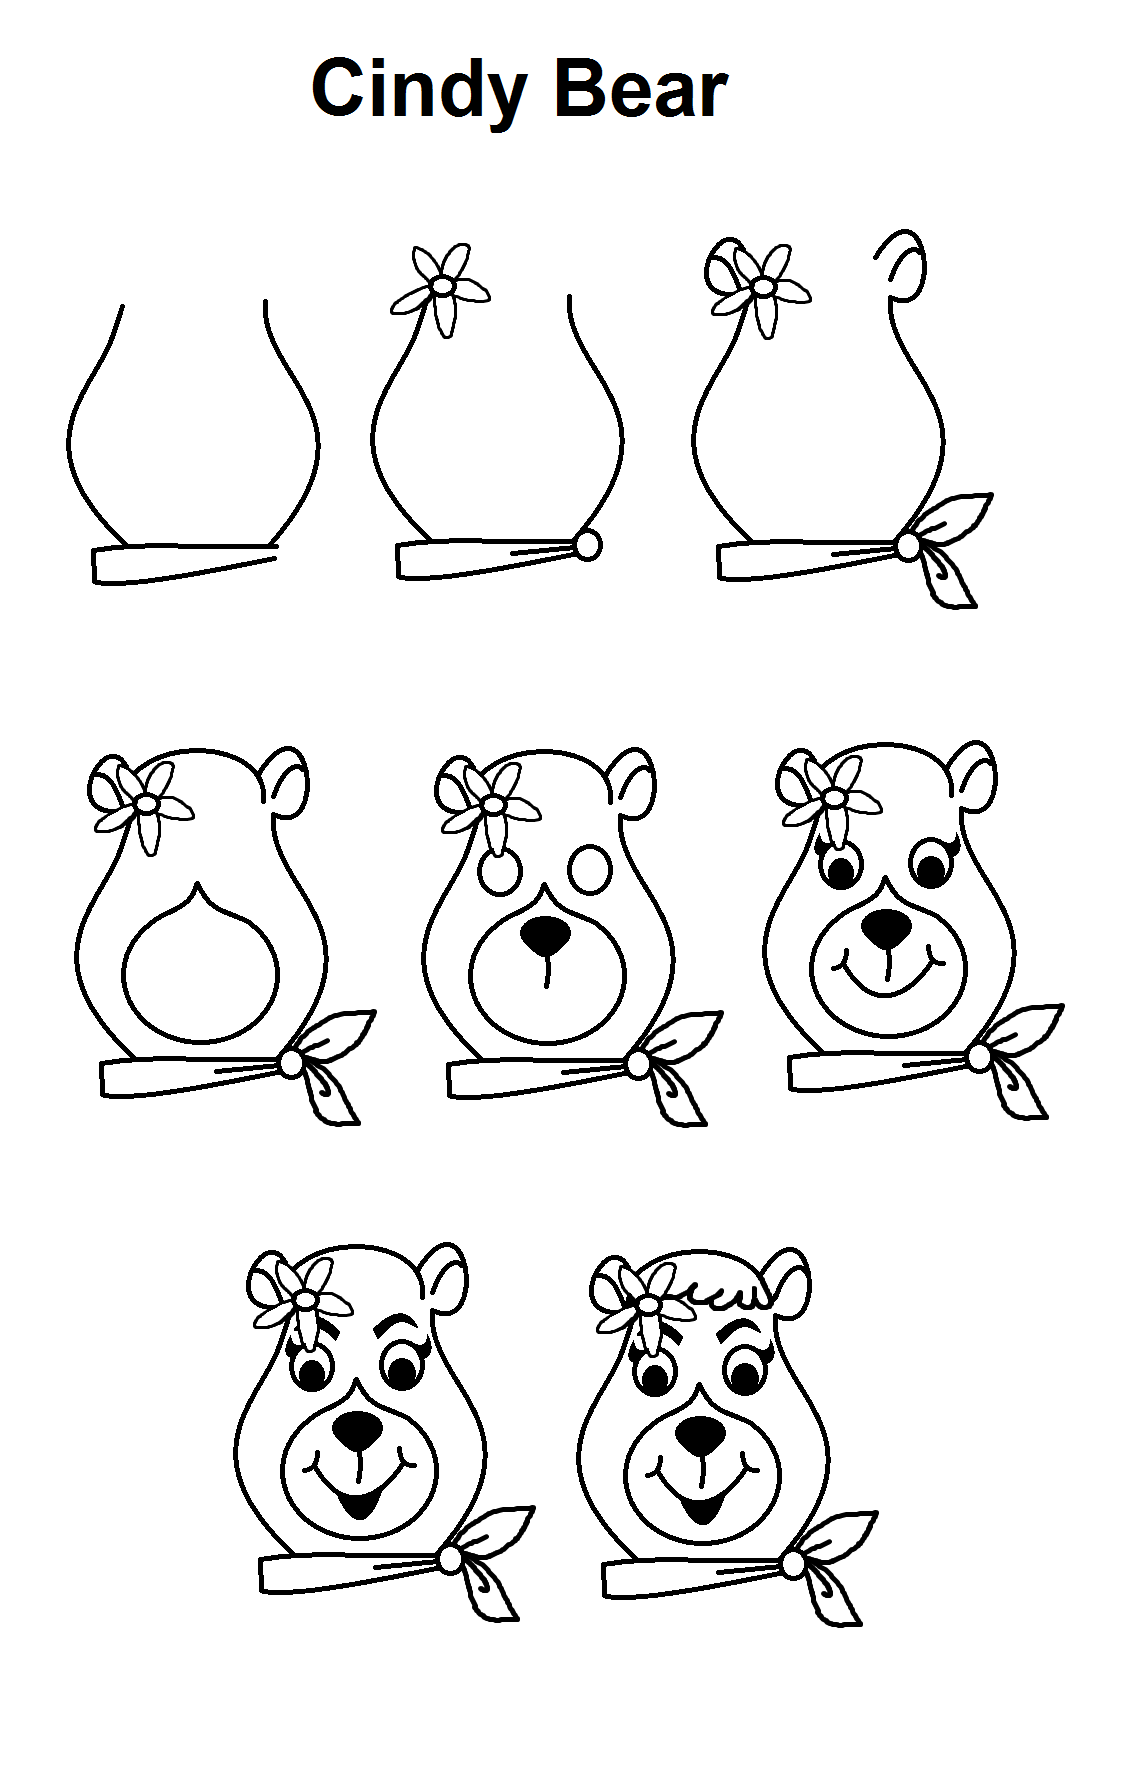 how to draw a bear step by step step by step tutorial to draw cindy bear with images by how to draw a step step bear